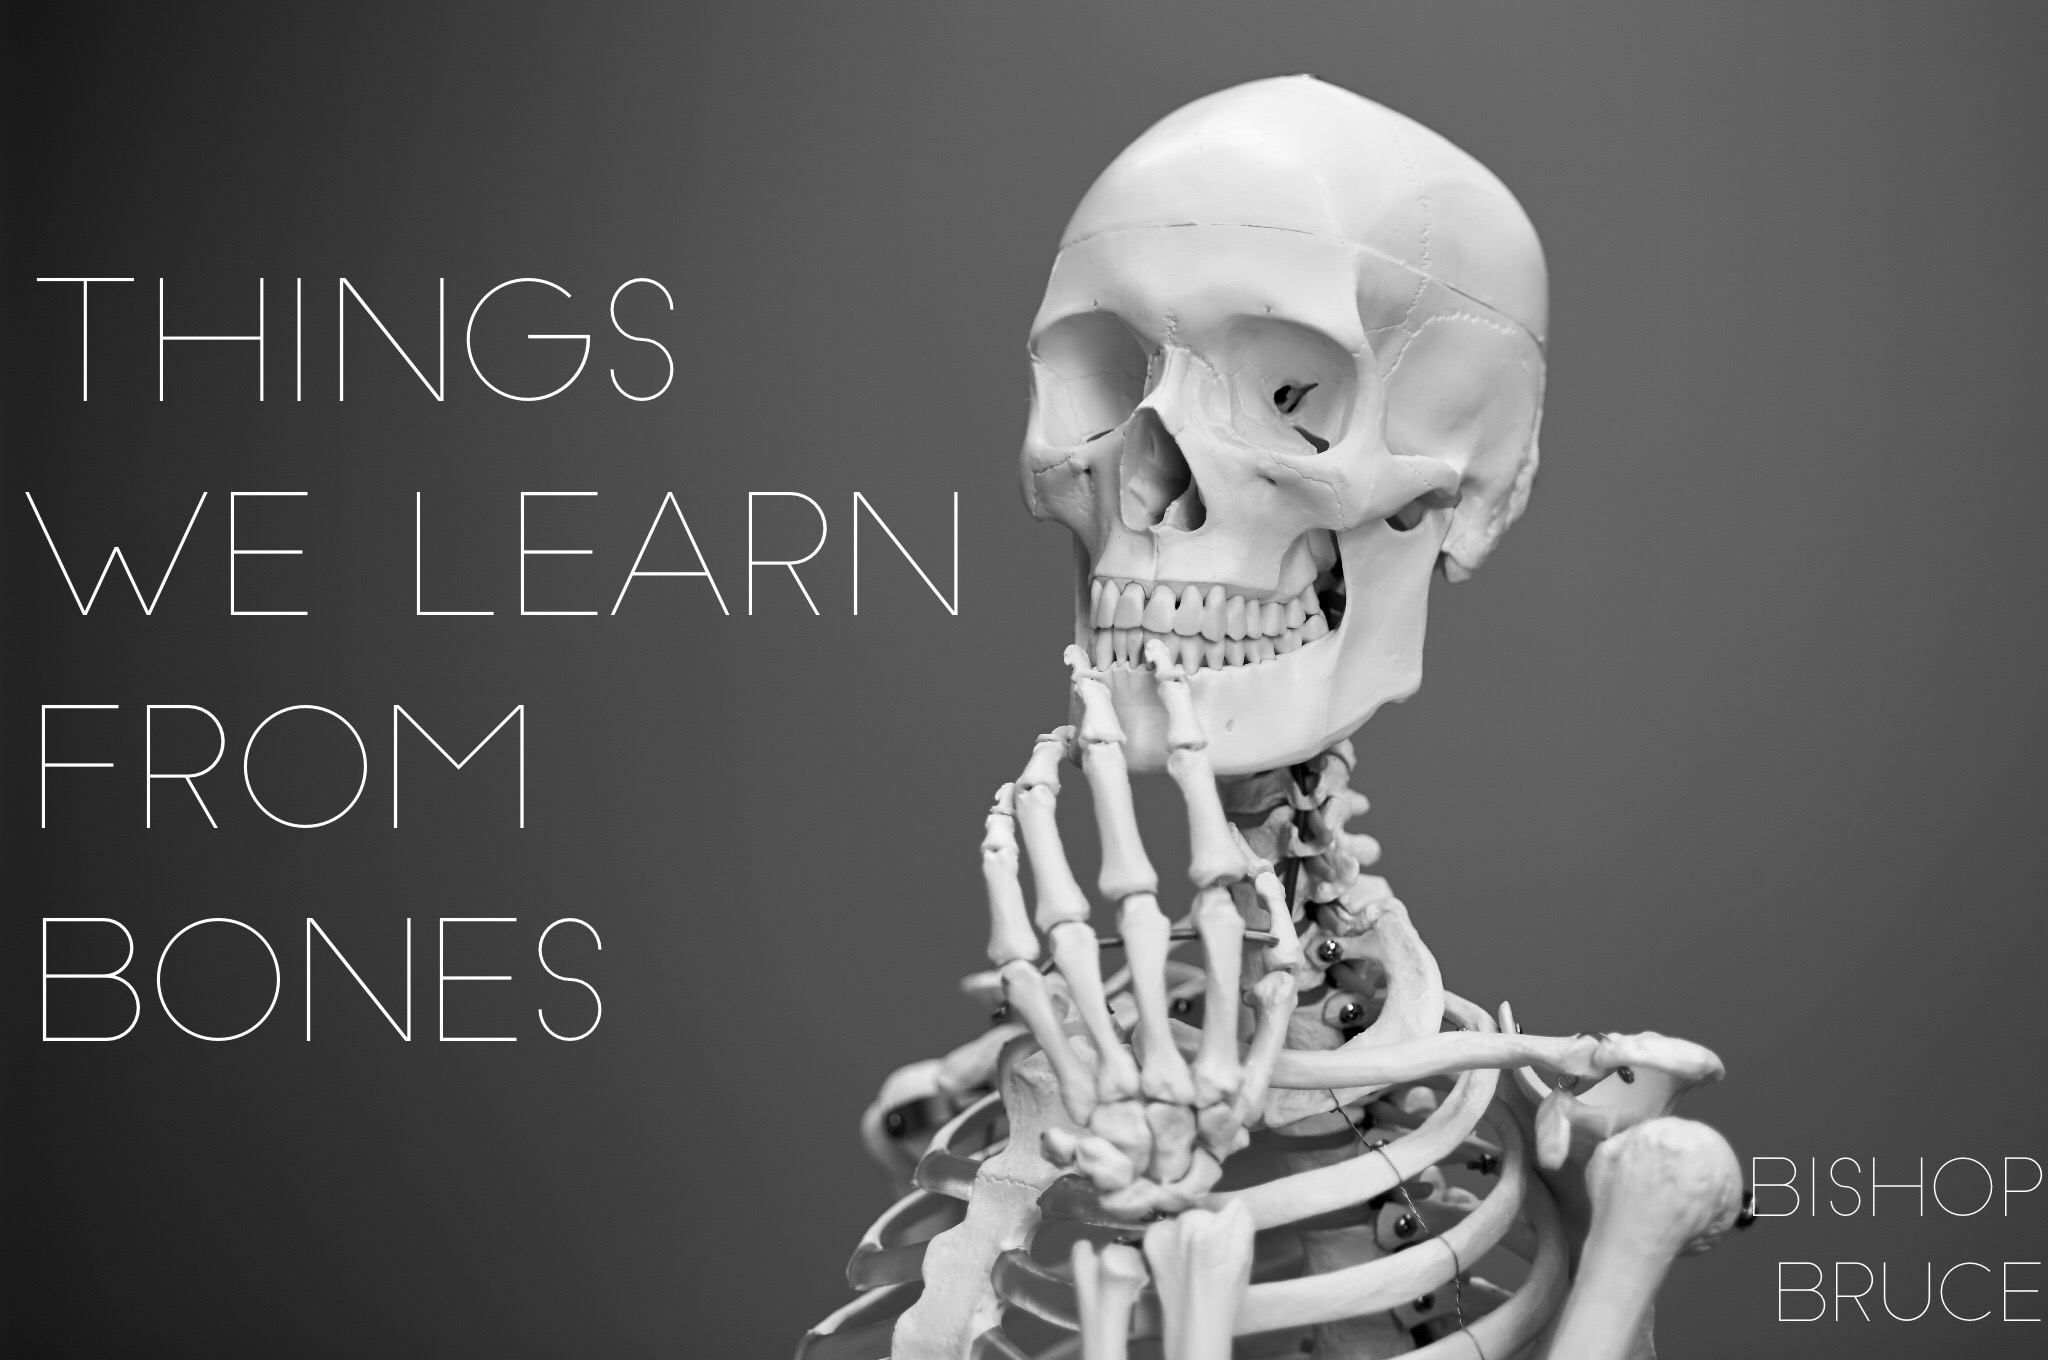 Things We Learn from Bones